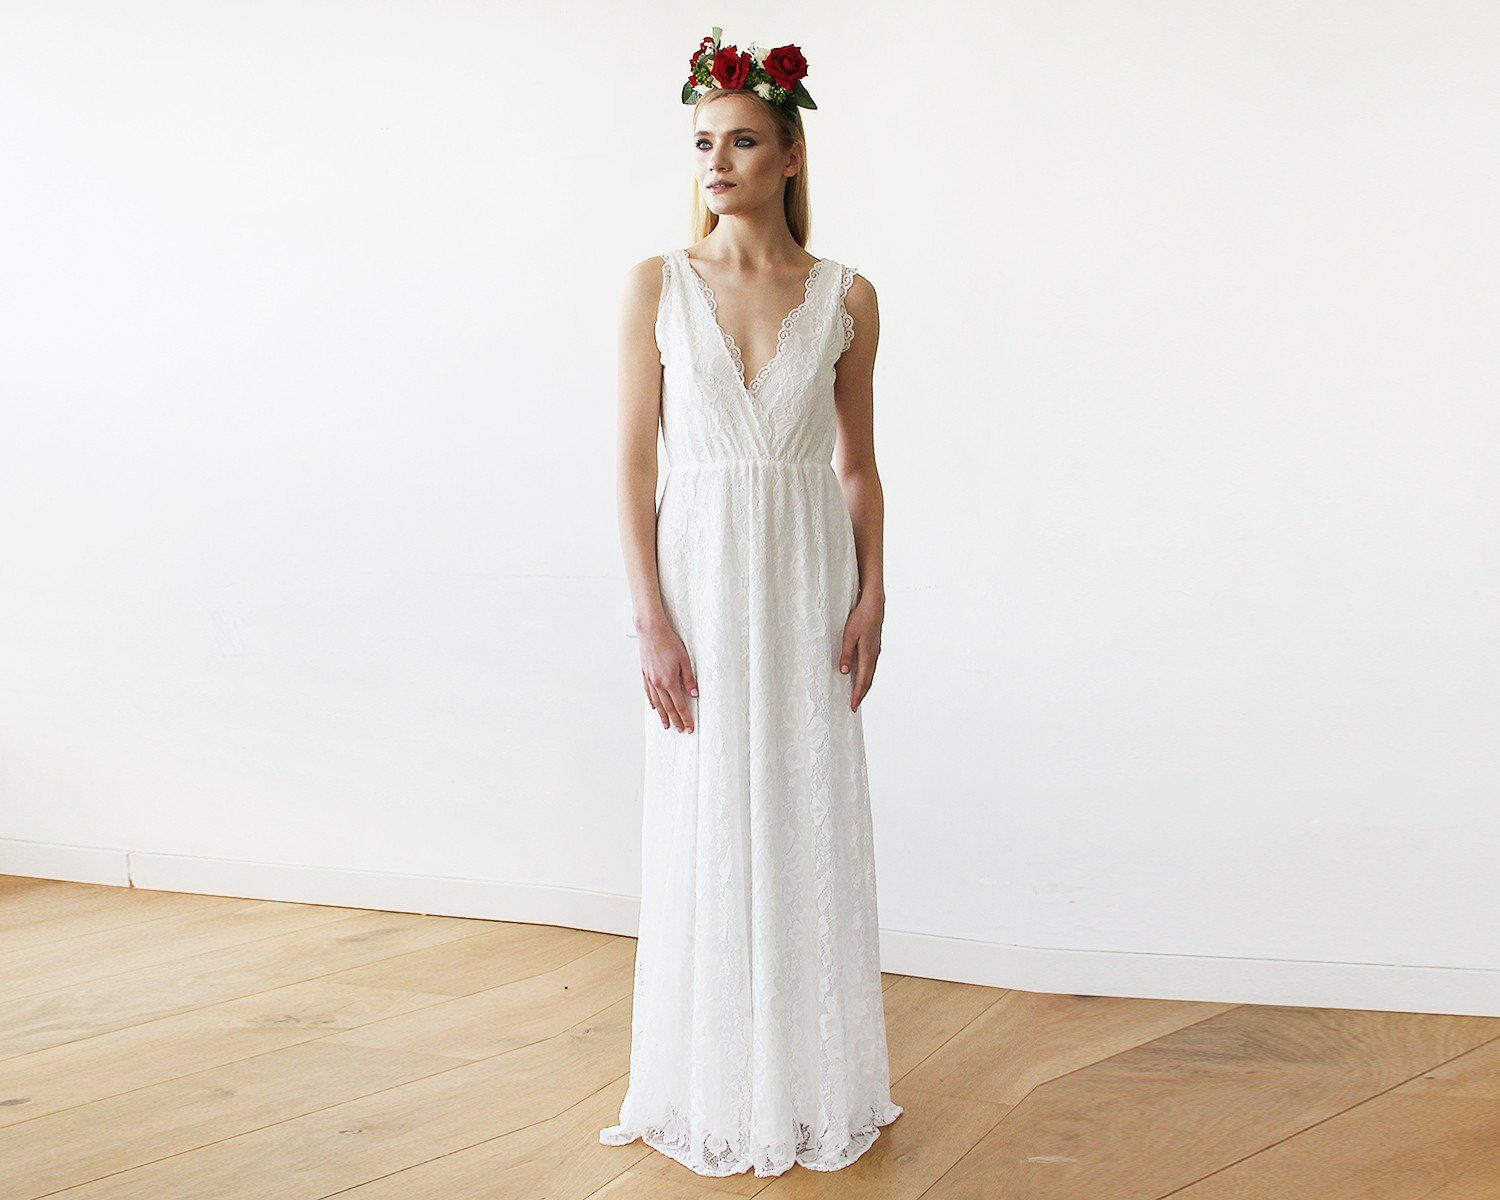 Ivory Wedding Gowns: Sleeveless Ivory Lace Wedding Gown 1150